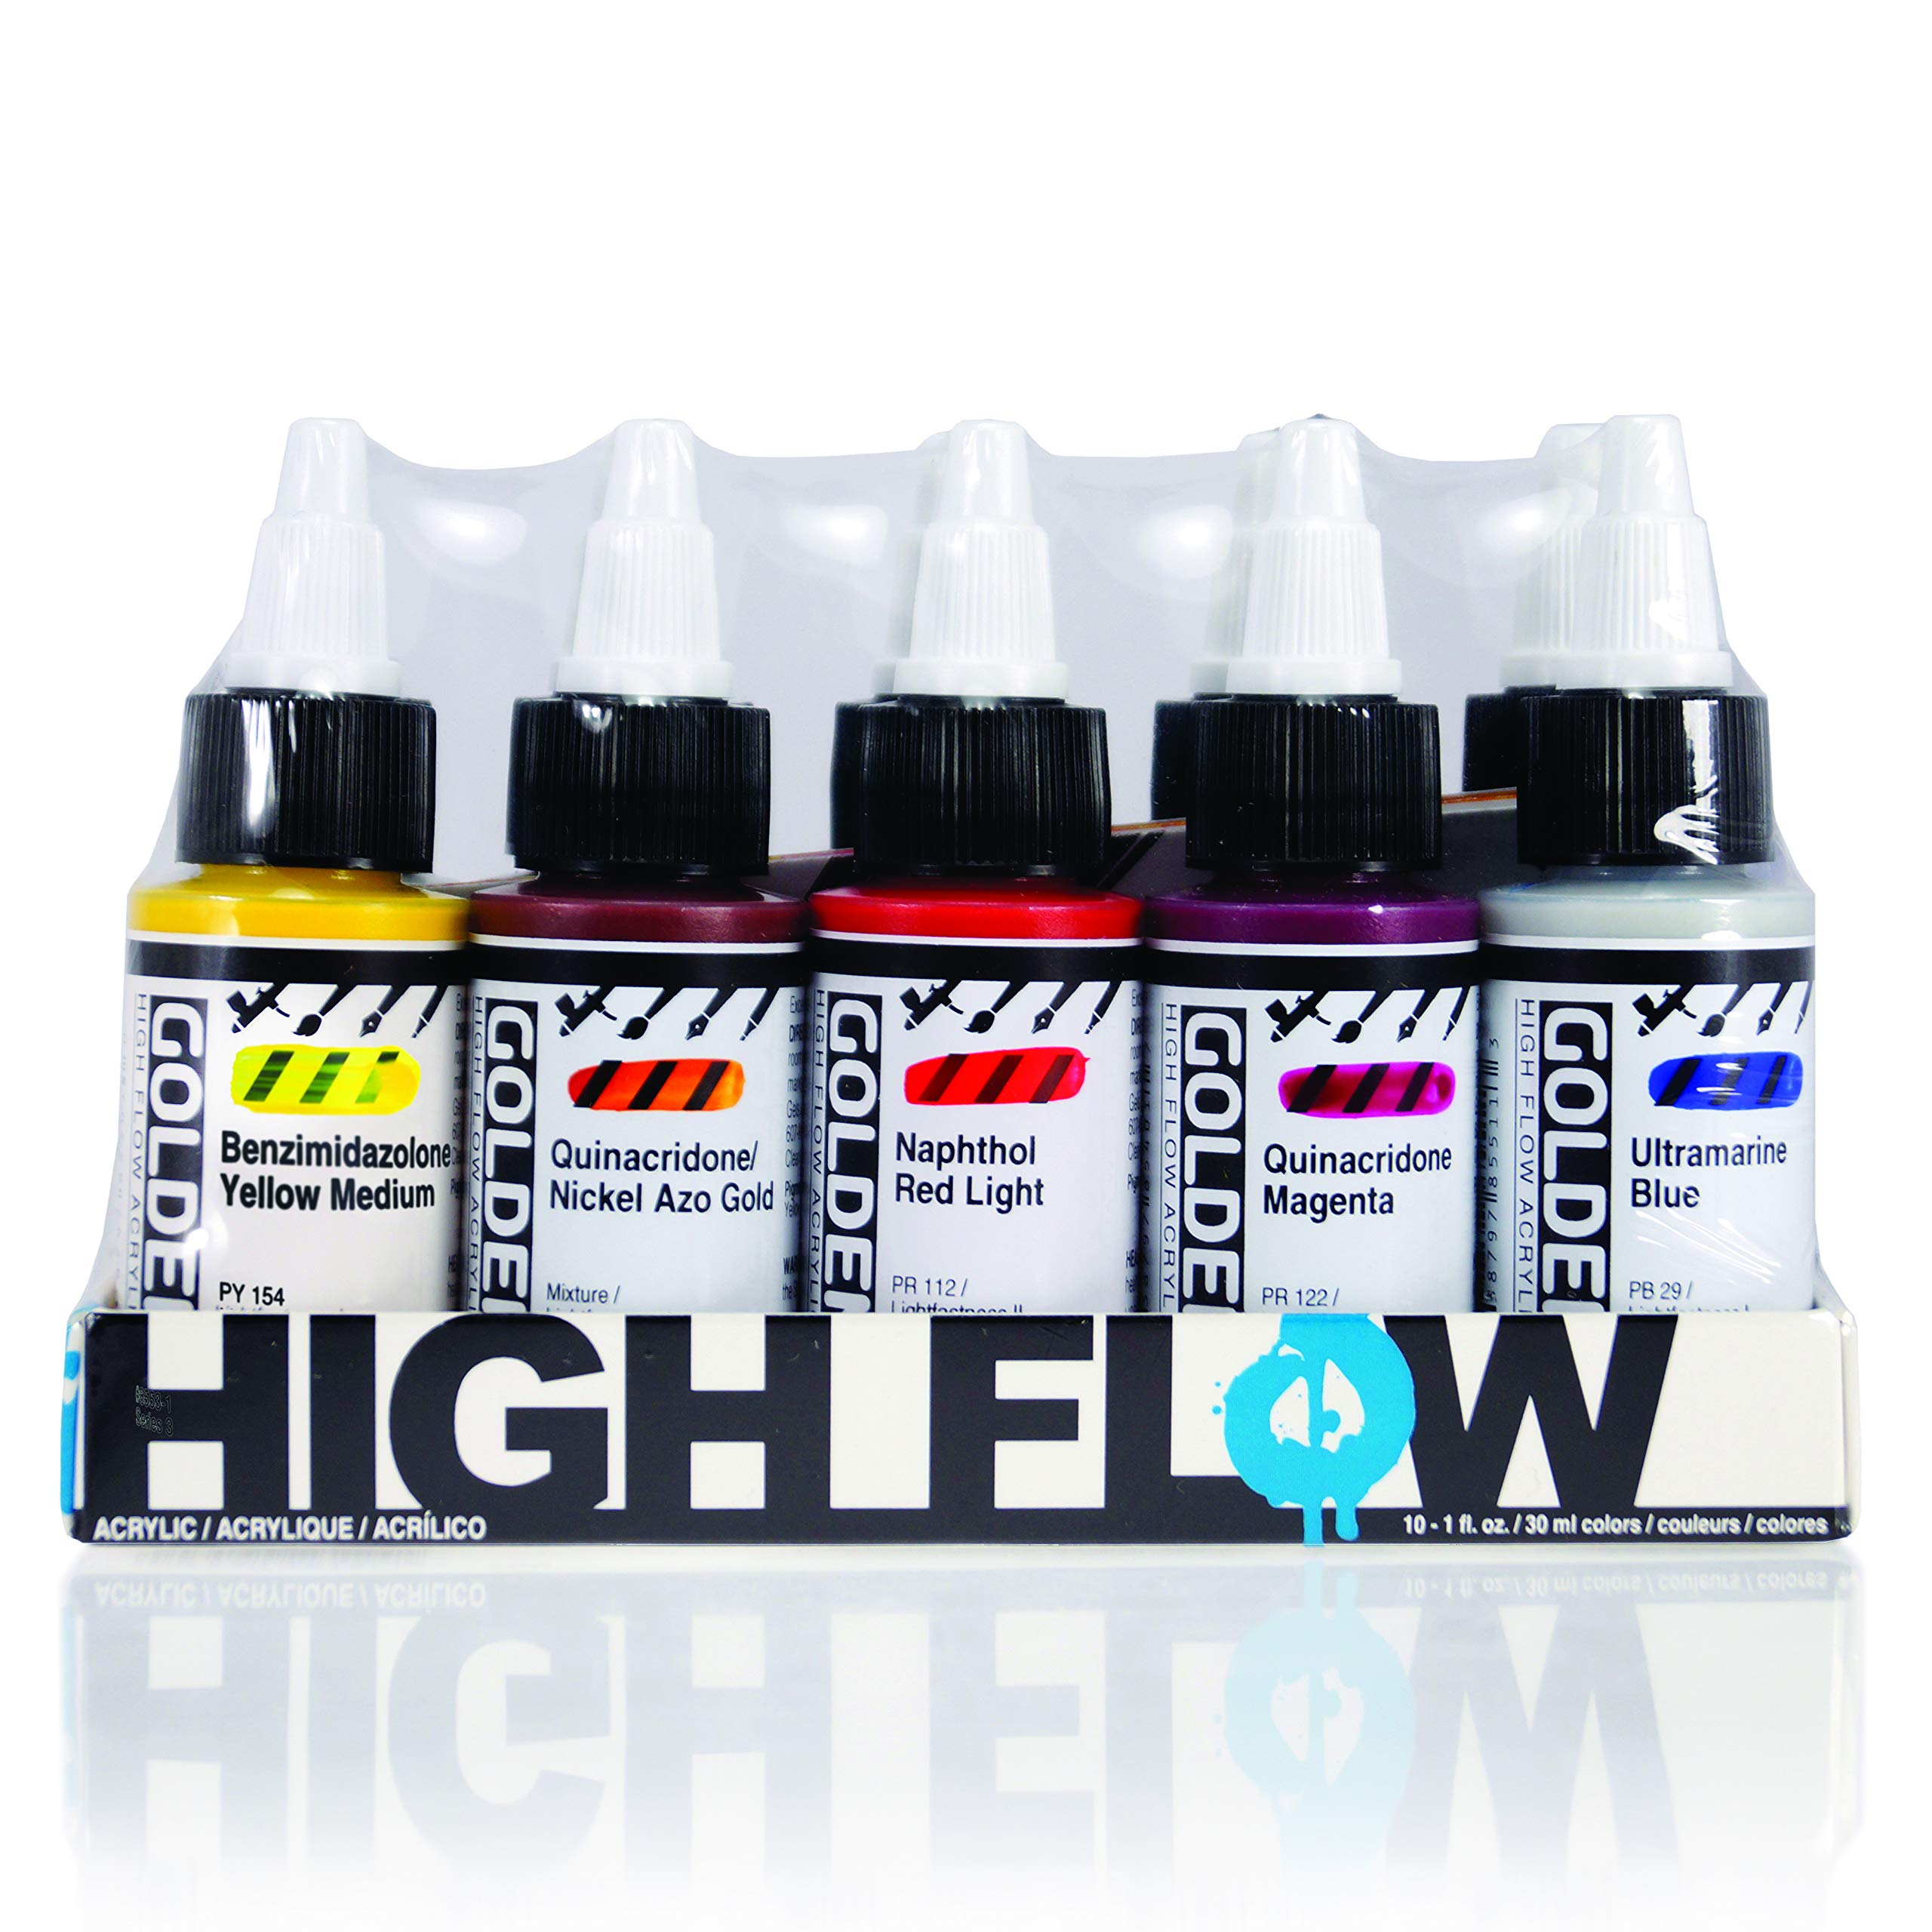 Golden High Flow Acrylic, Assorted 10 Color Set, Burnt Sienna, Carbon Black, Quinacridone Magenta, Hansa Yellow Med, Quin/Nickel Azo Gold, Naphthol Red Light, Phthalo Blue, Phthalo Green, Ultra Blue & Titanium White.,  by Golden